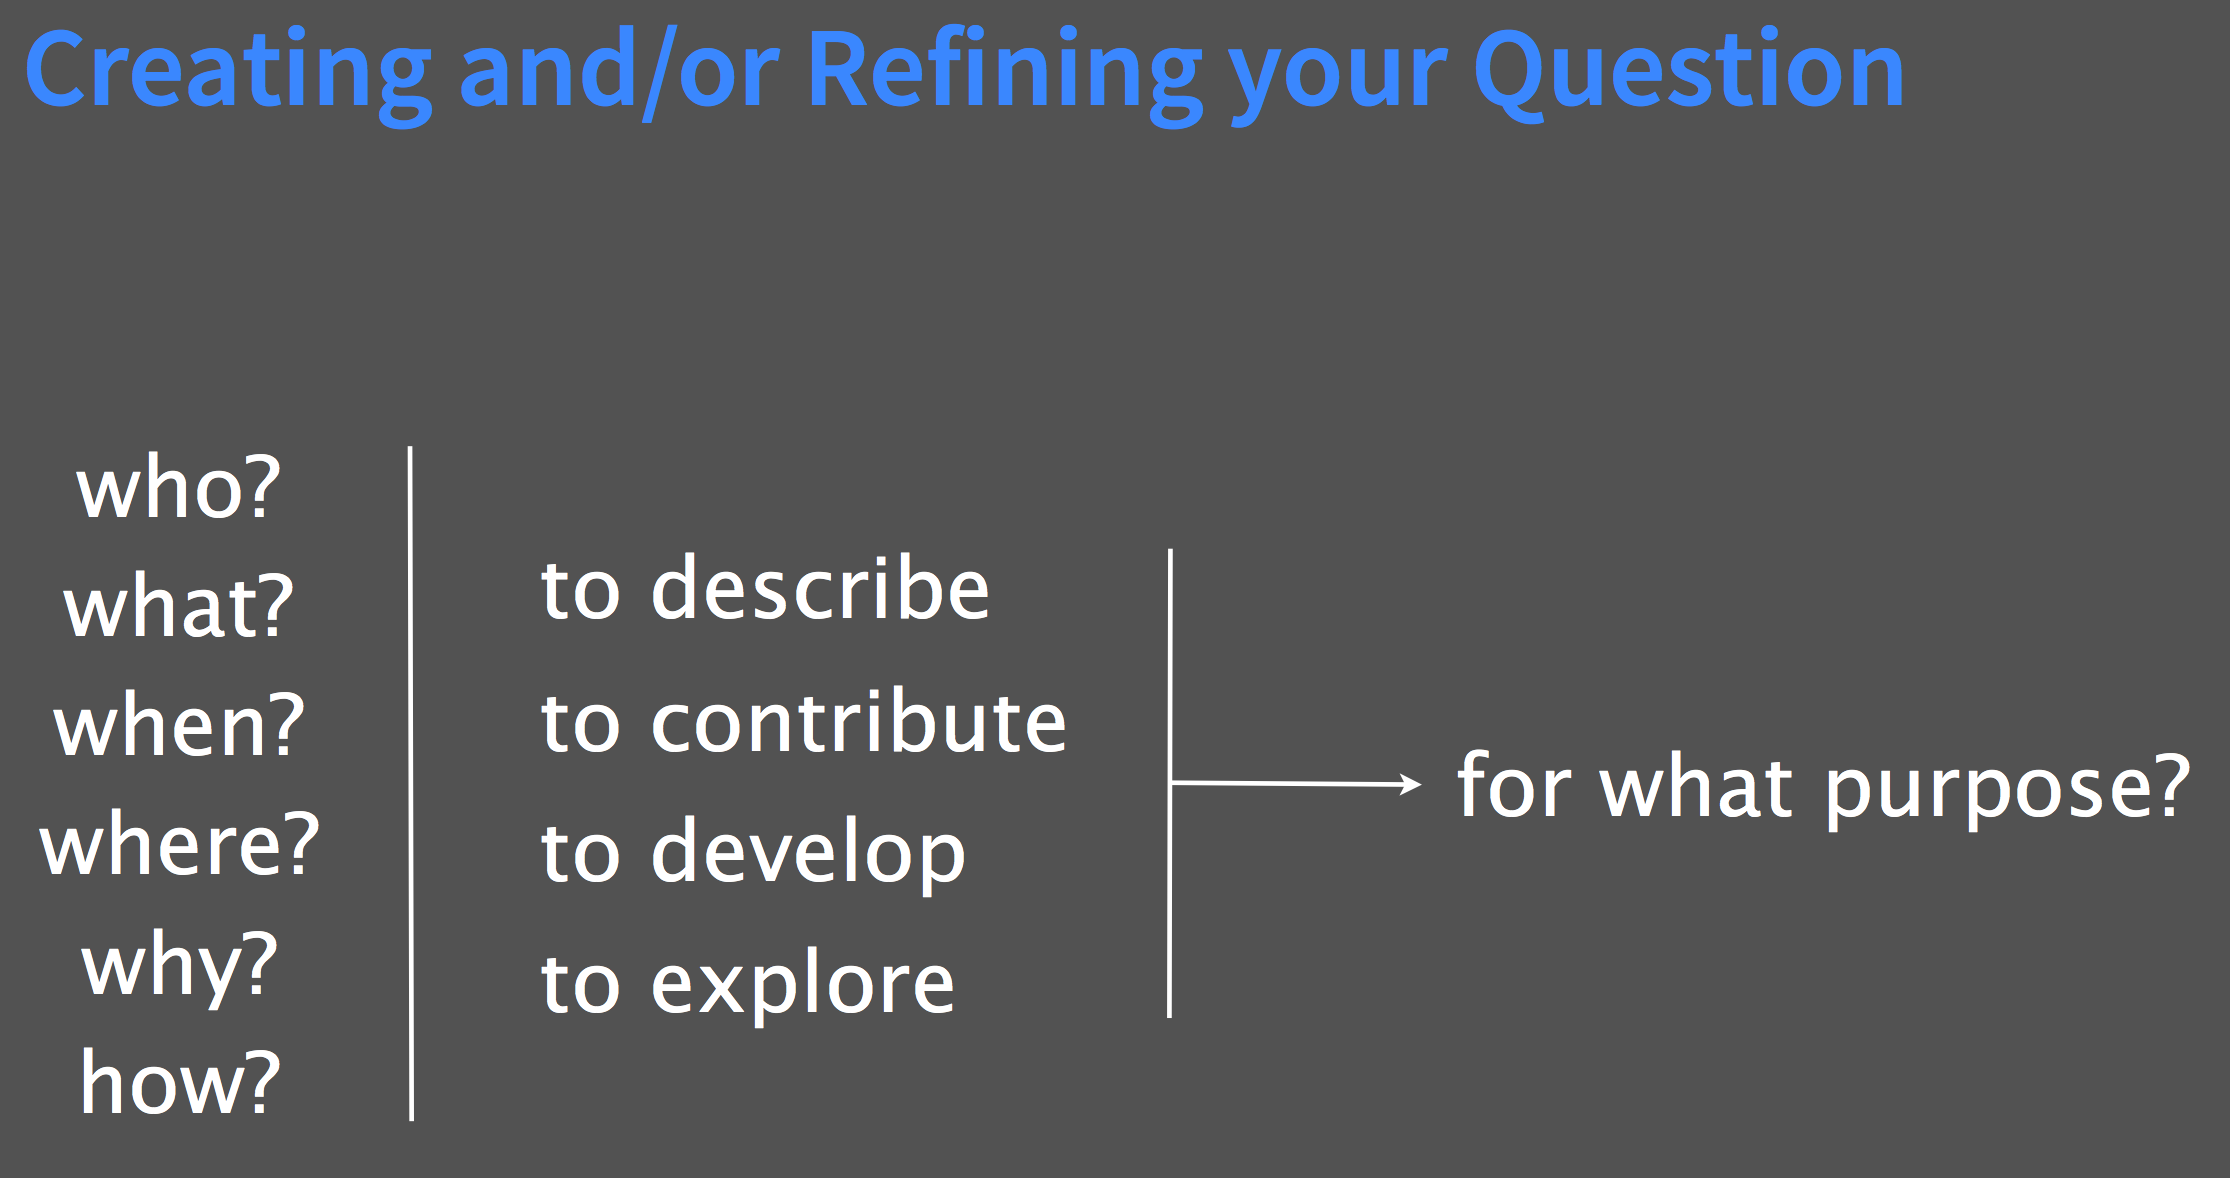 Creating and/or refining your research question, per DevDH.org